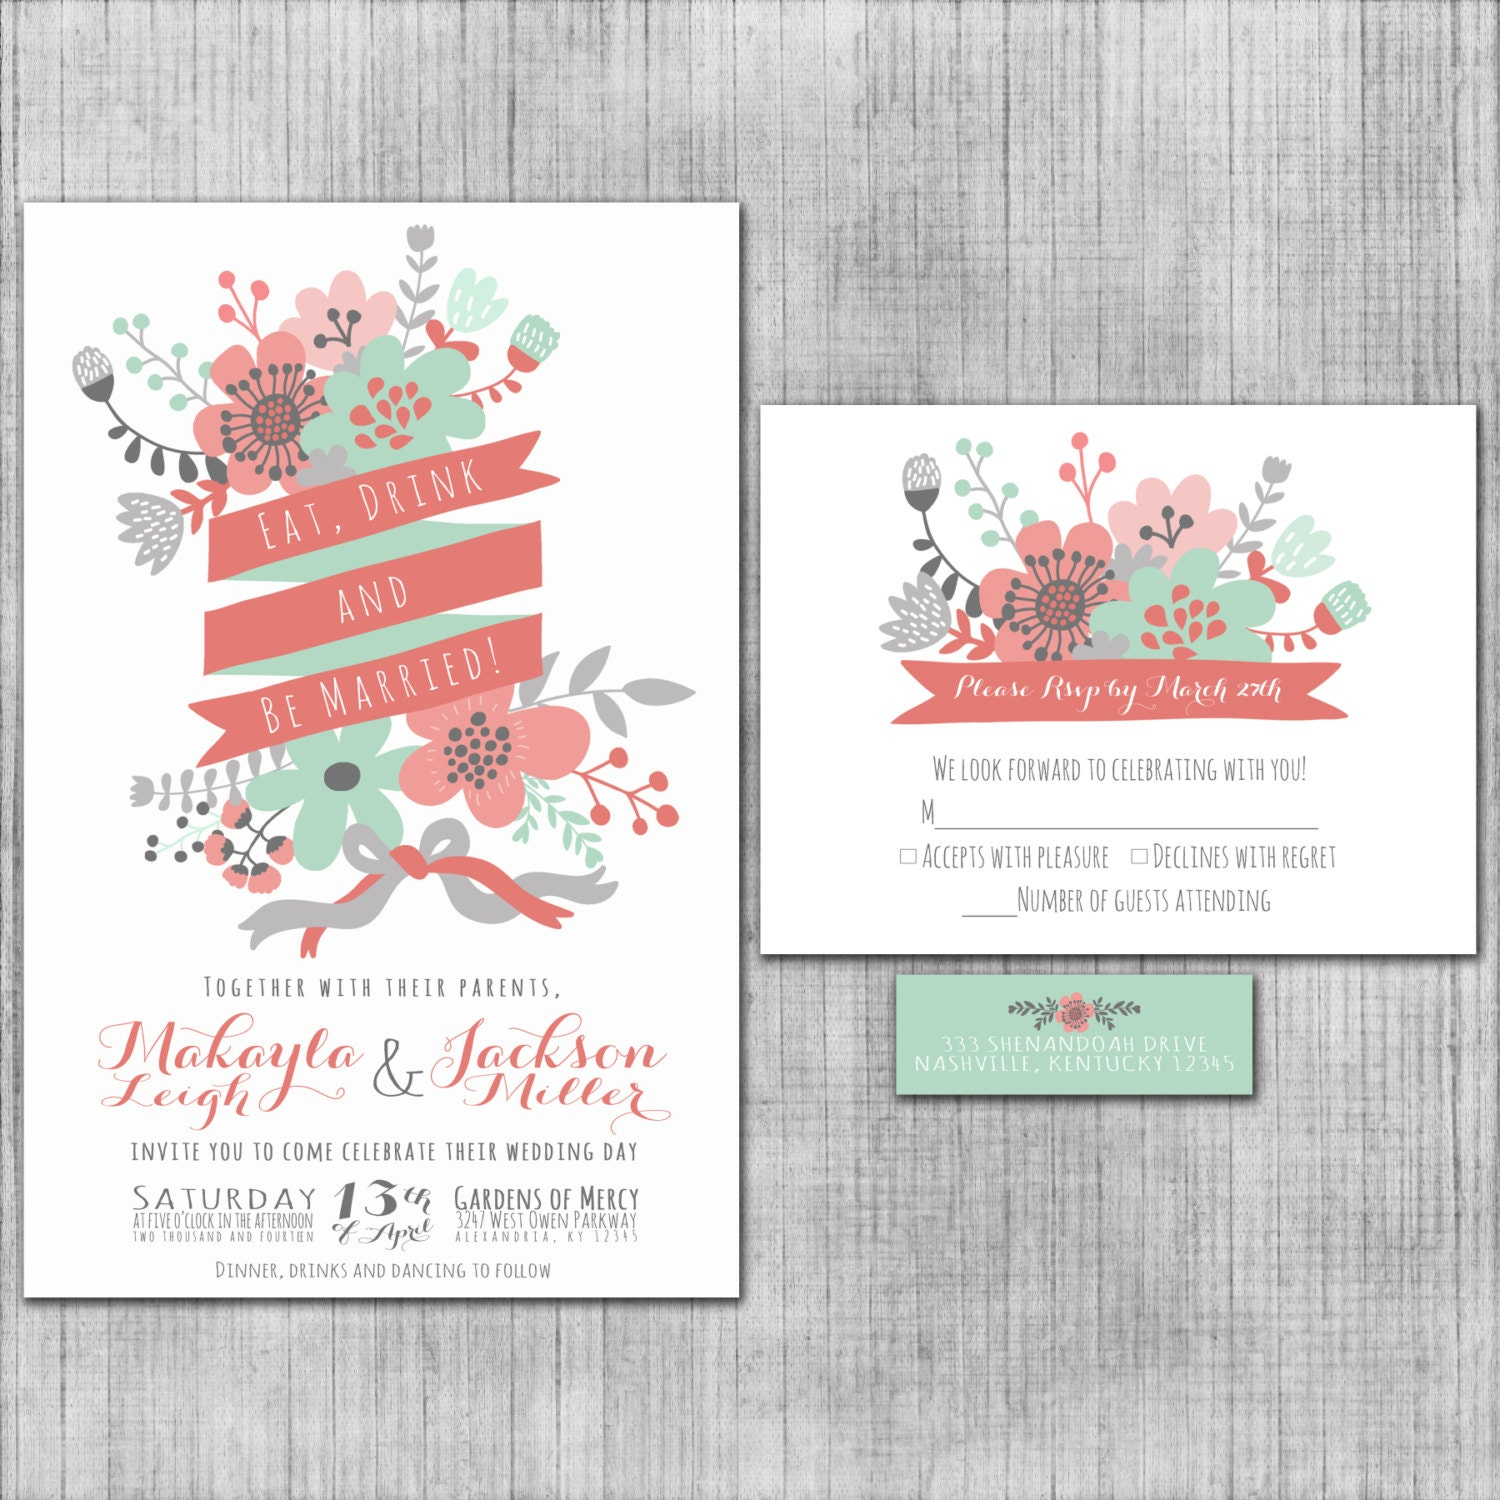 Mint Invitations Wedding: Mint Green Wedding Invitations Eat Drink And Be Married